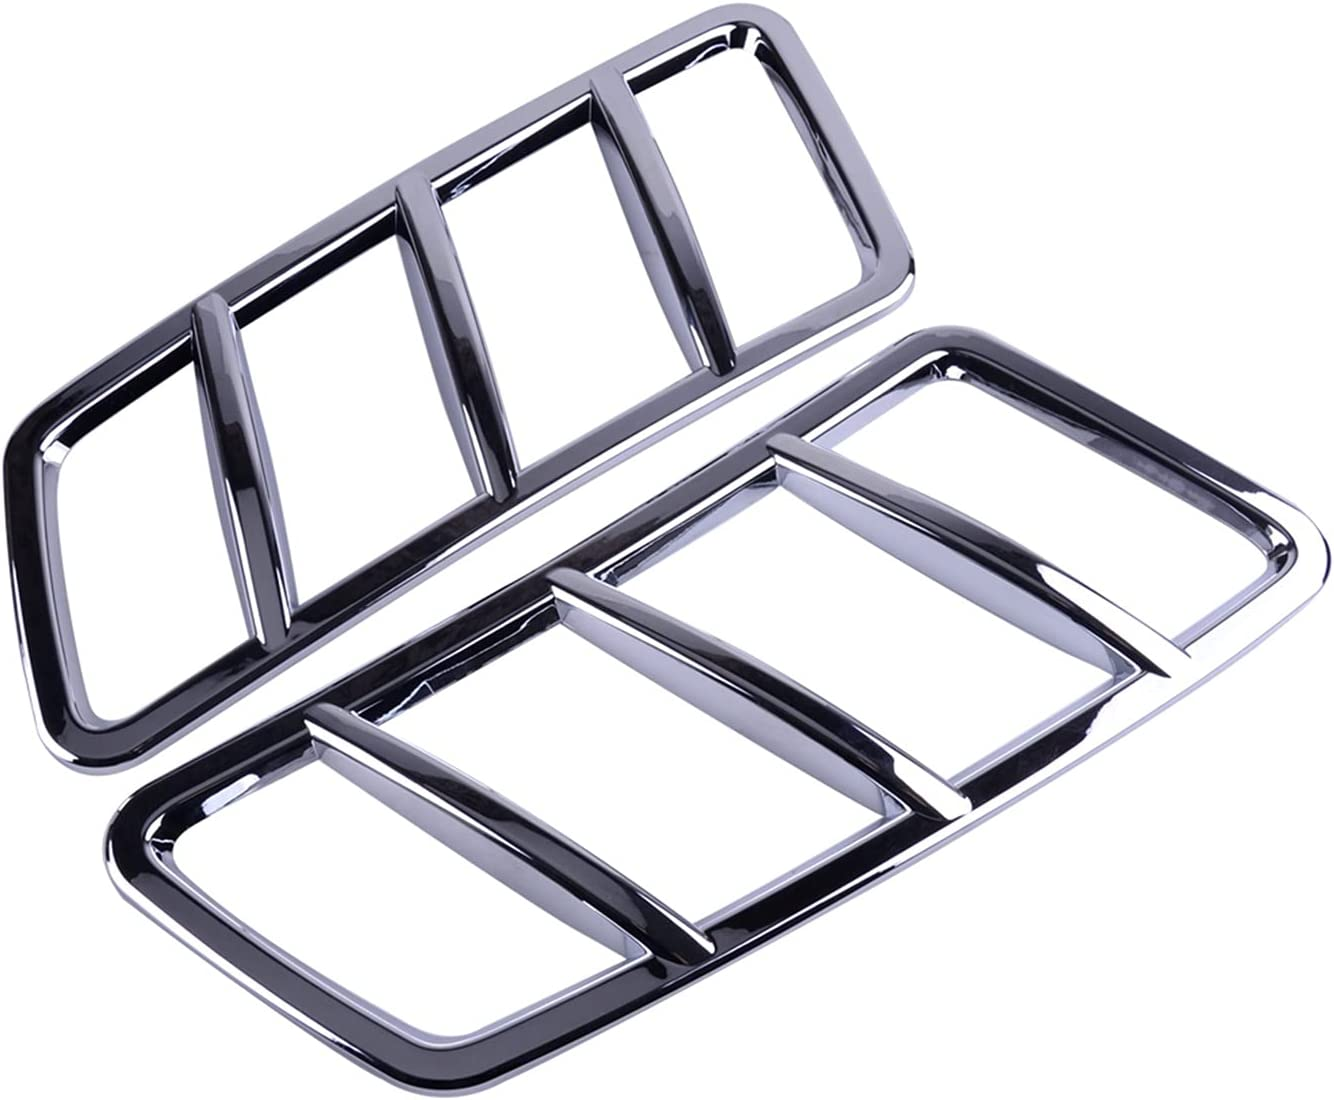 SHIWANGLIN 2Pcs Chrome Engine Hood Air Vent Max 55% OFF Cover Trim Fit Oklahoma City Mall f ABS